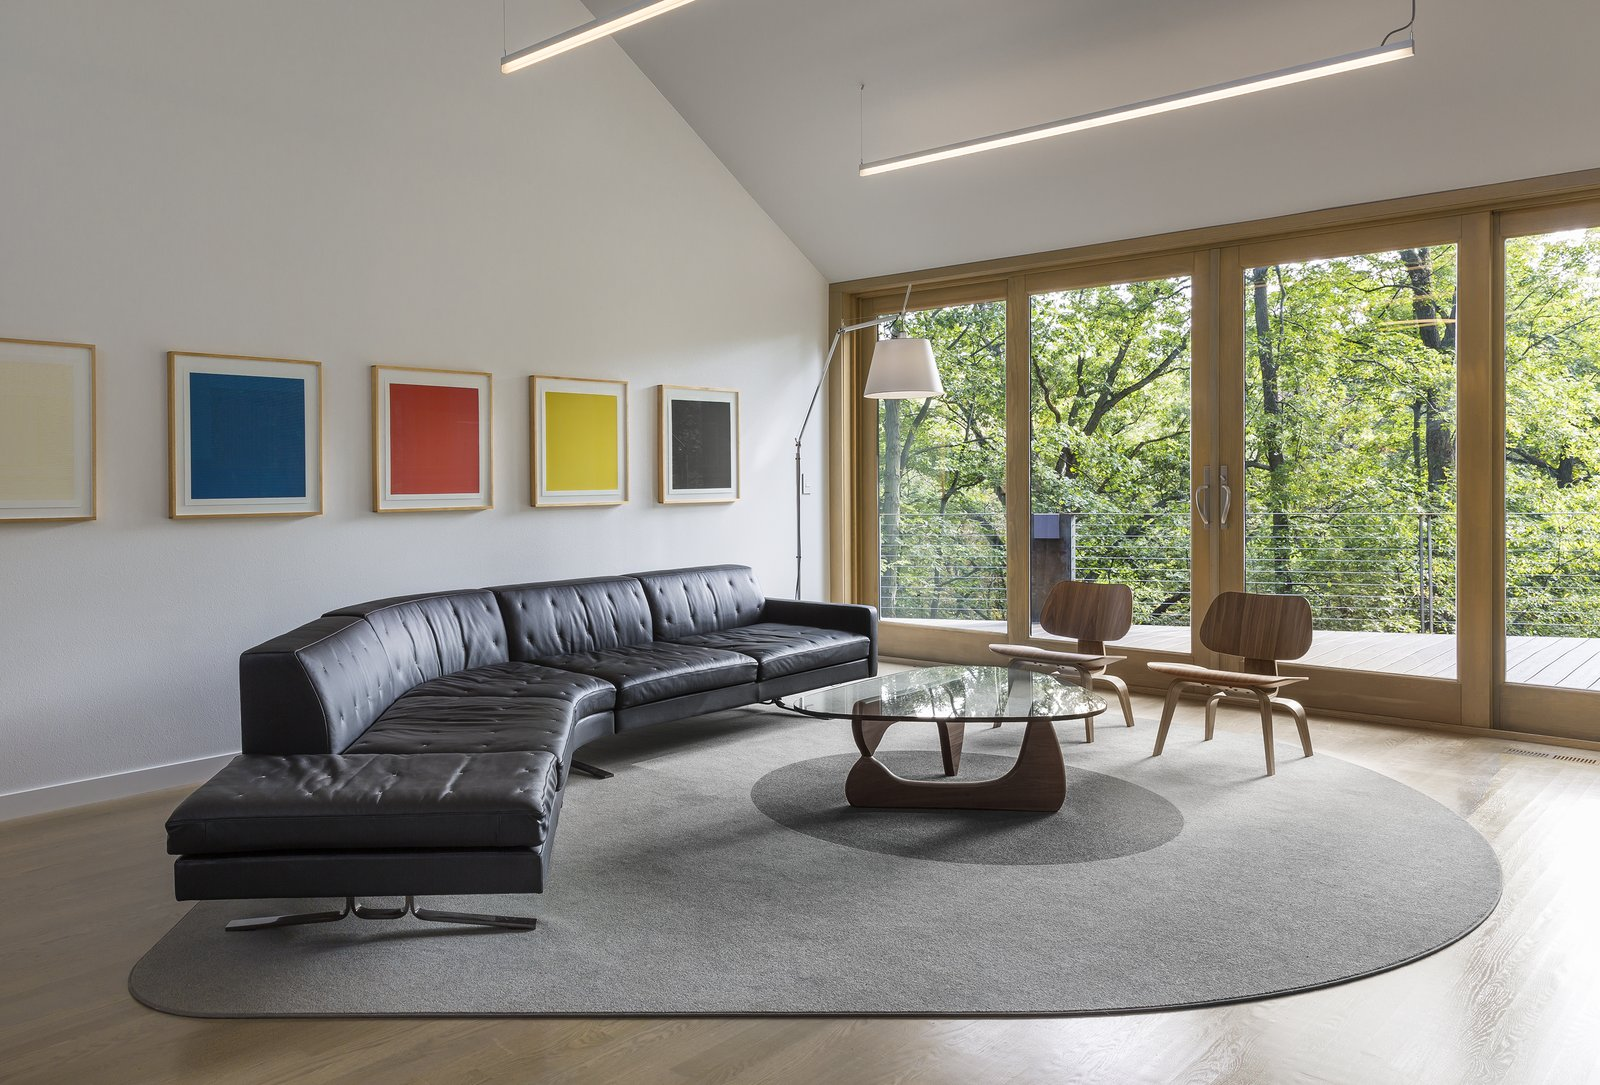 Tagged: Living Room, Rug Floor, Sectional, Light Hardwood Floor, Chair, and Coffee Tables.  3LP Residence by Substance Architecture